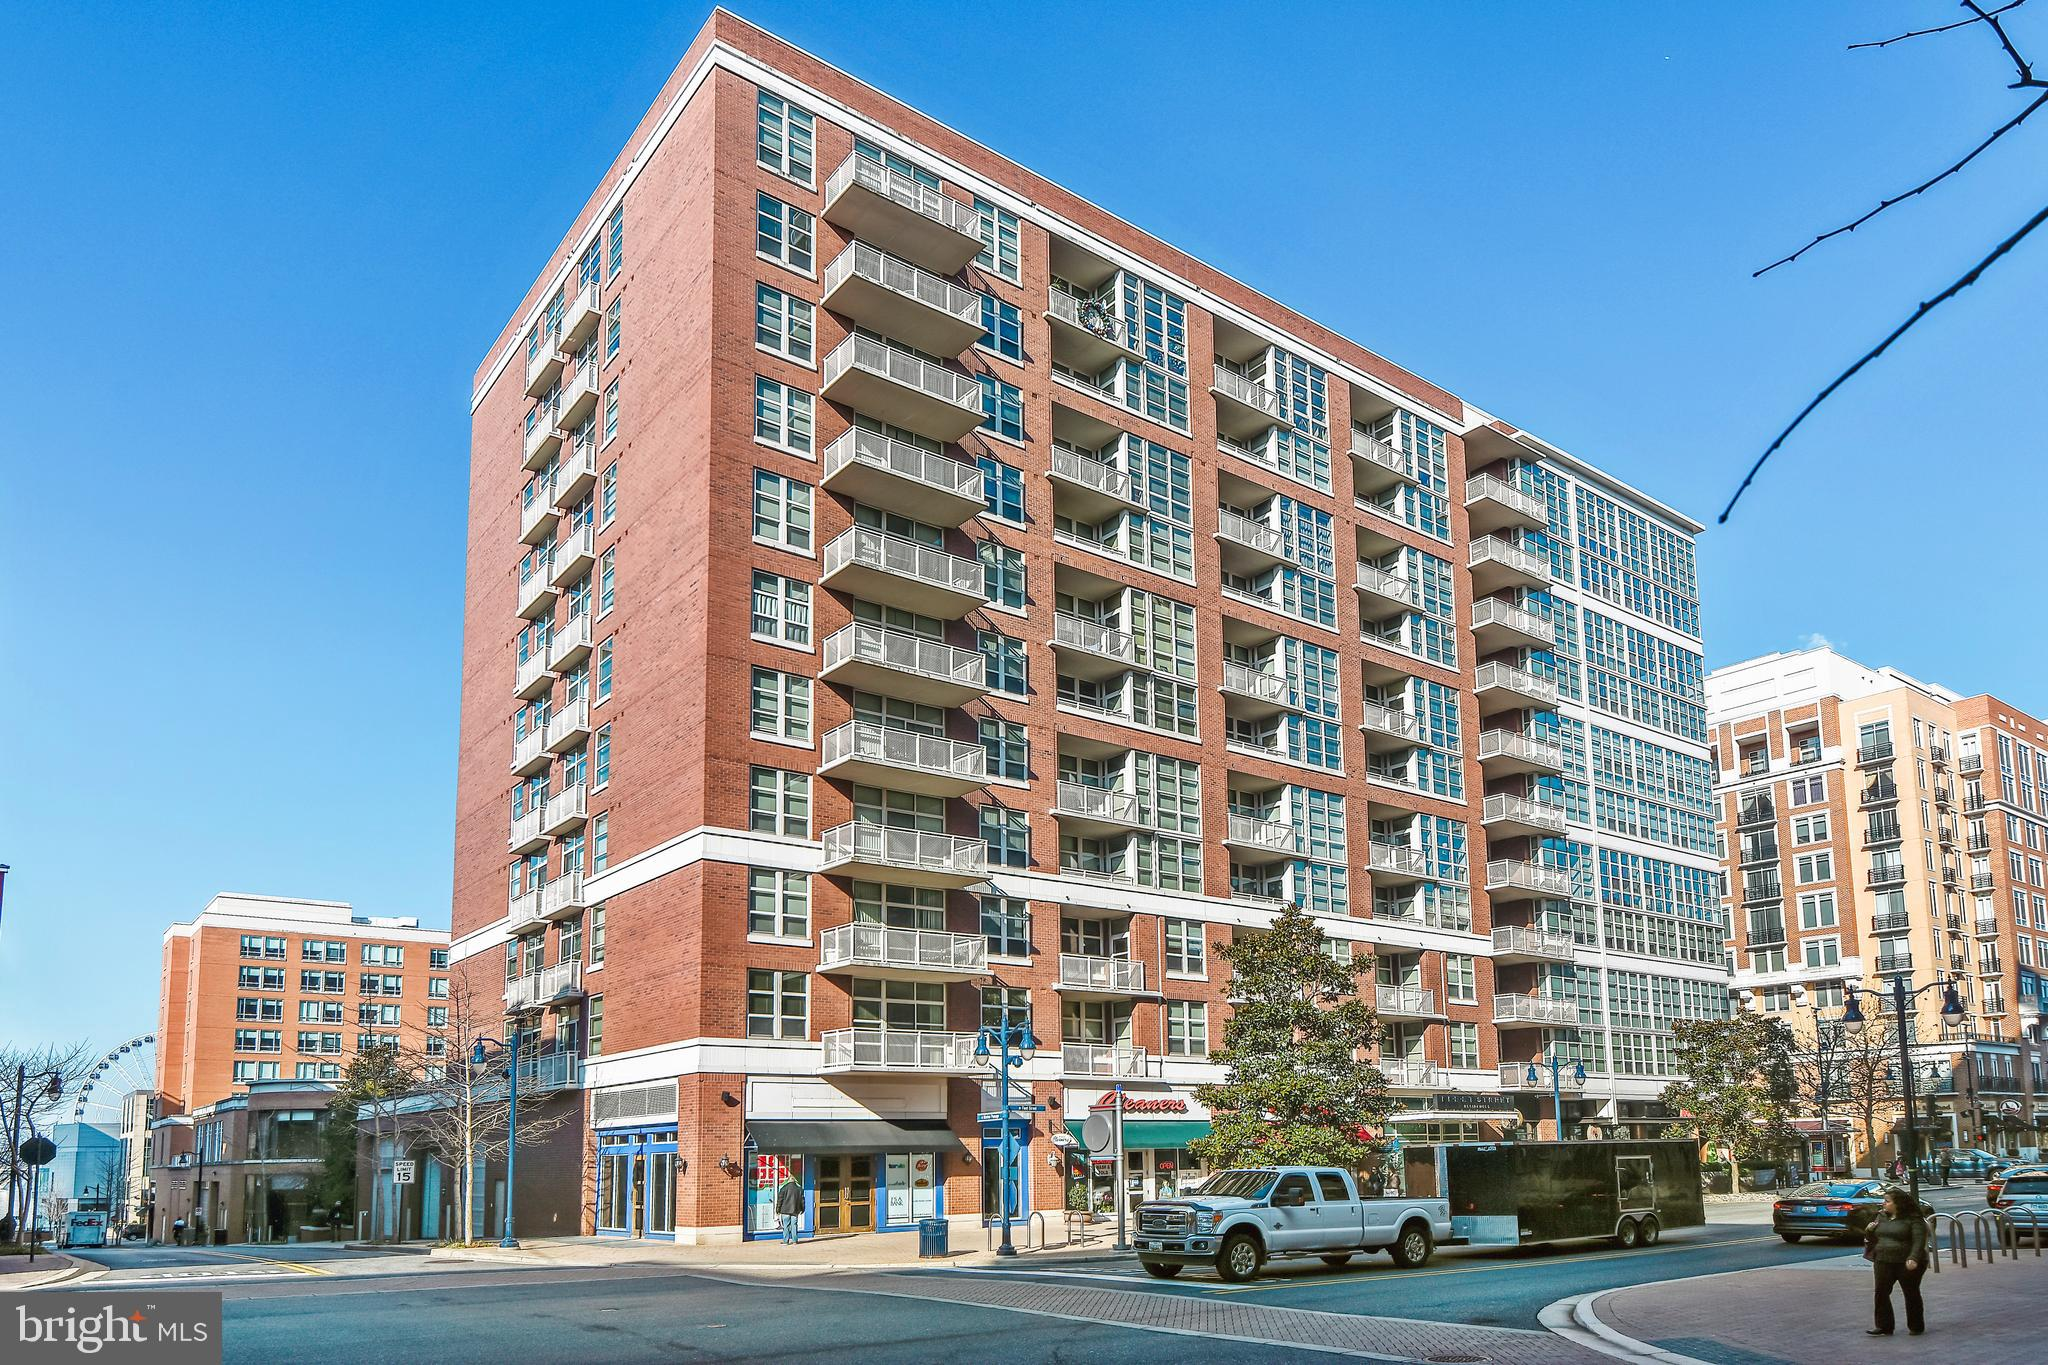 LUXURIOUS PENTHOUSE CONDO-OPEN FLOOR PLAN-2 BEDROOMS-2 .5 BATHROOMS PLUS A DEN- LOT'S OF WINDOWS-LOCATED IN THE HEART OF NATIONAL HARBOR NEAR MGM  AND THE POTOMAC RIVER.  BEAUTIFUL VIEWS OF THE POTOMAC RIVER & THE SHOPPING DISTRICT!  UNIT IS DEEDED WITH 2 PARKING SPACES- HARDWOOD FLOORS IN LIVING AREAS-GRANITE COUNTER TOPS & STAINLESS STEEL APPLIANCES!